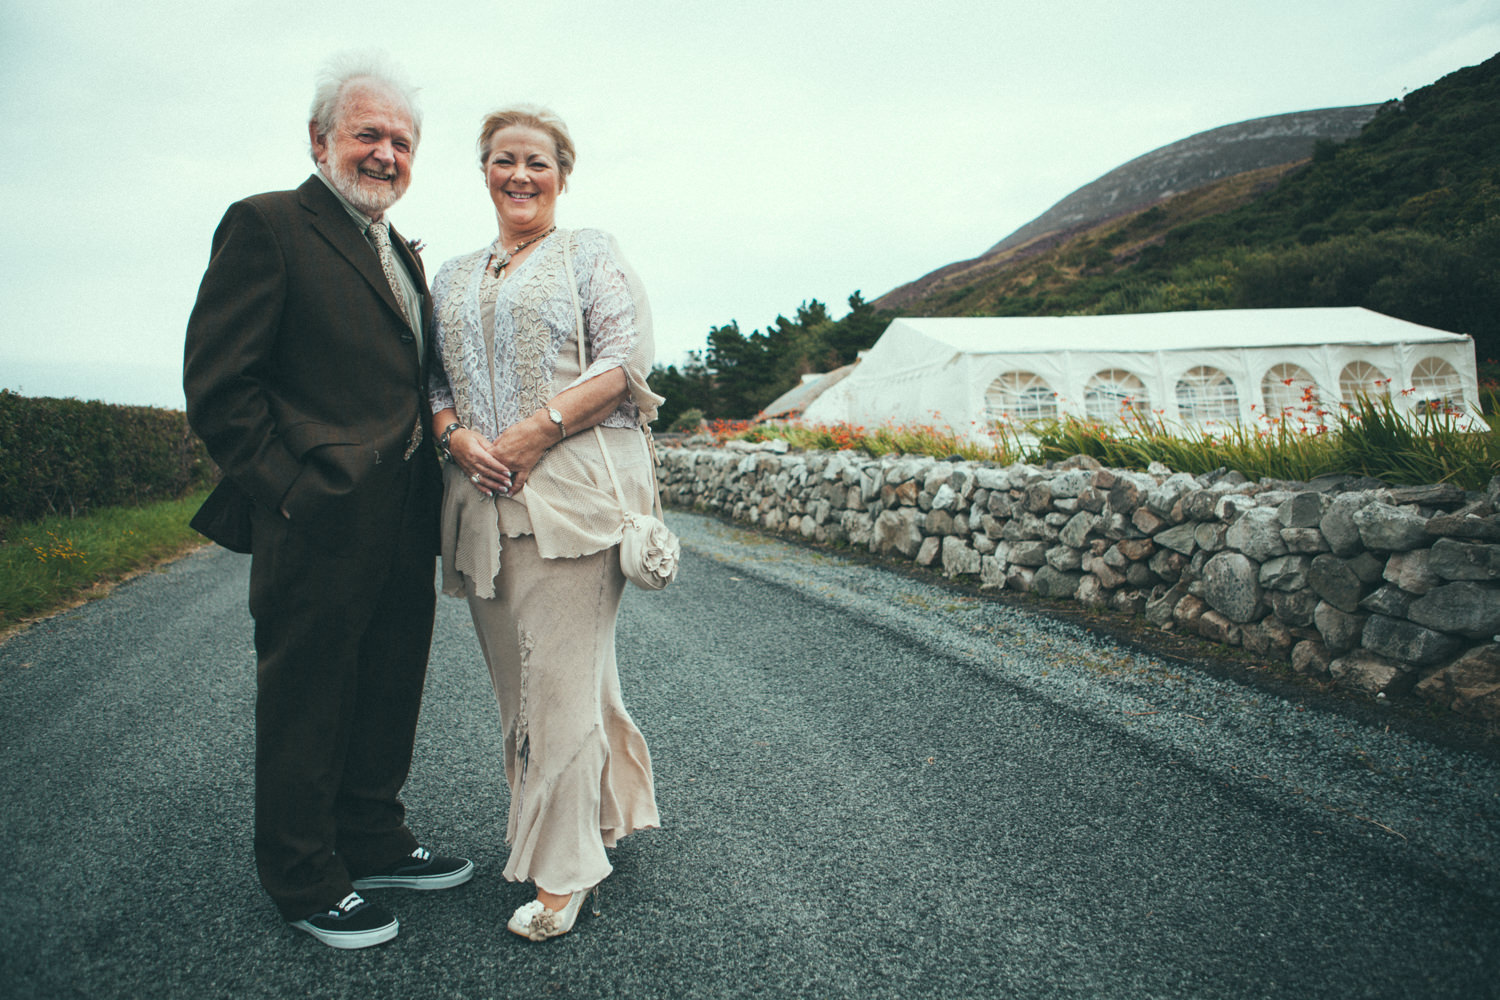 Donegal wedding mamore cottages Jay and Karen